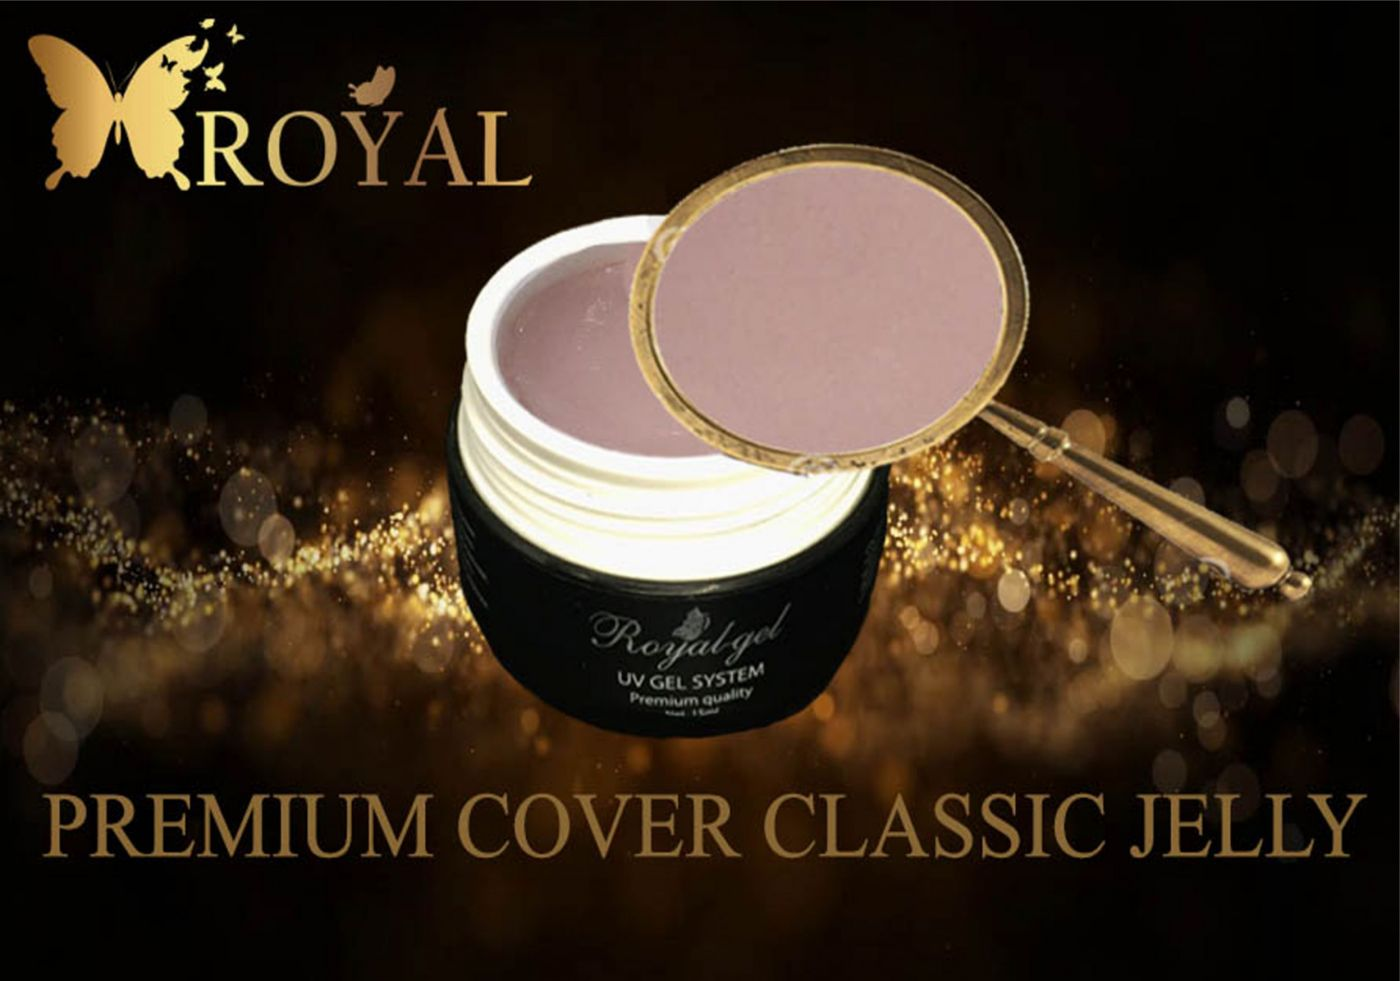 PREMIUM COVER CLASSIC JELLY ROYAL GEL